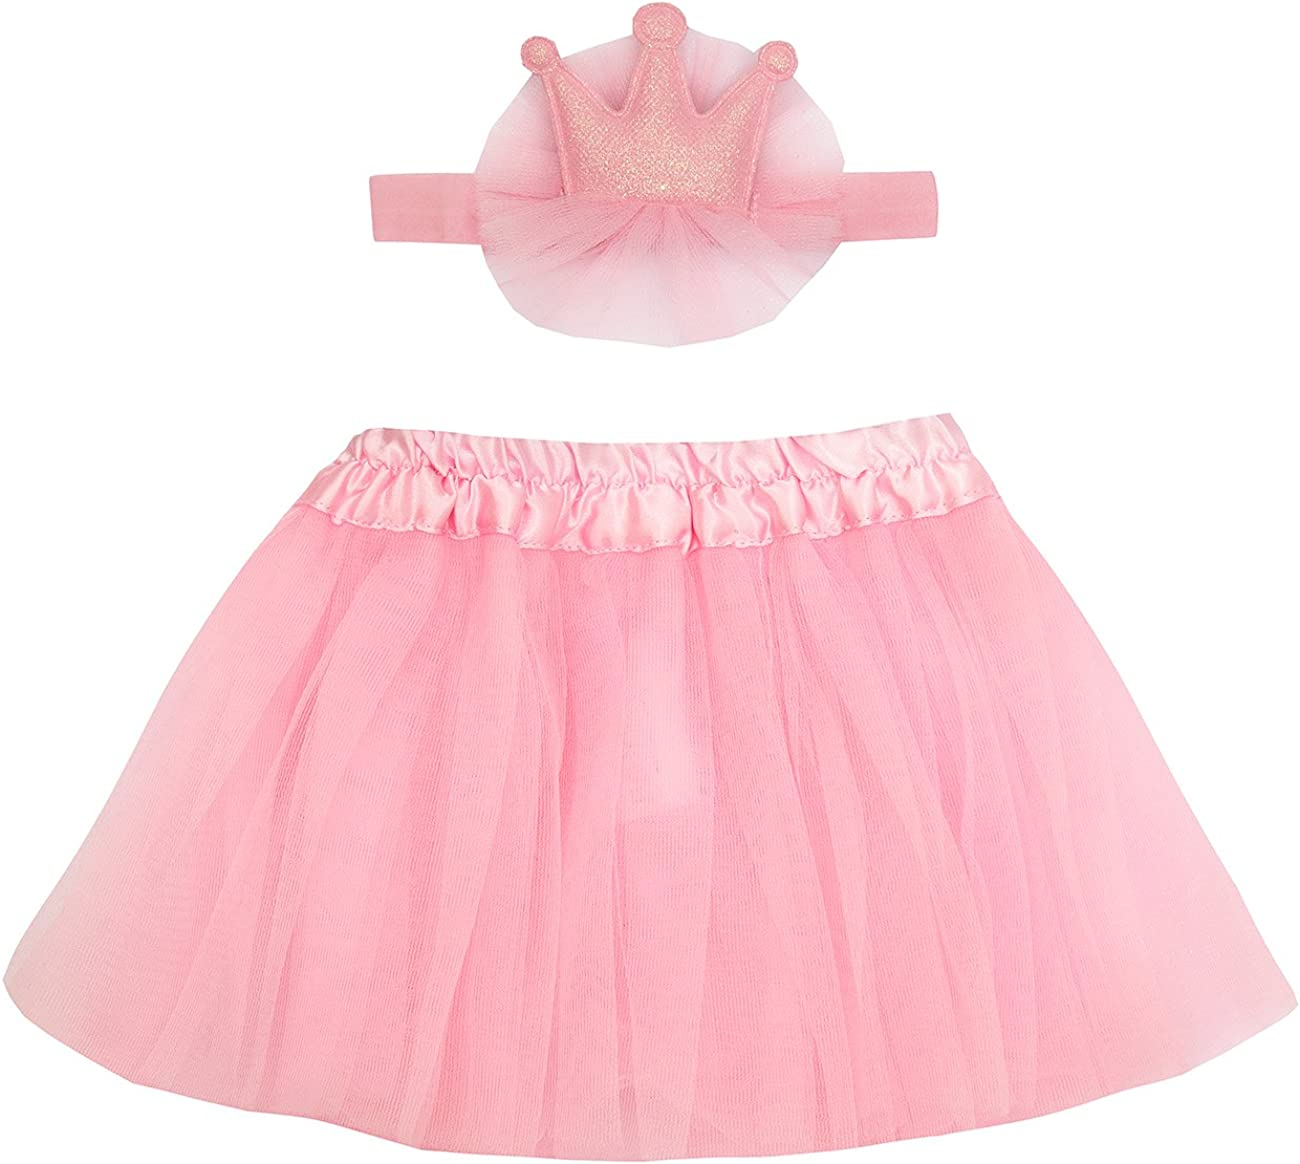 Girls Baby Kids Queen Princess Headband And Elastic Tutu Skirt Dress Set